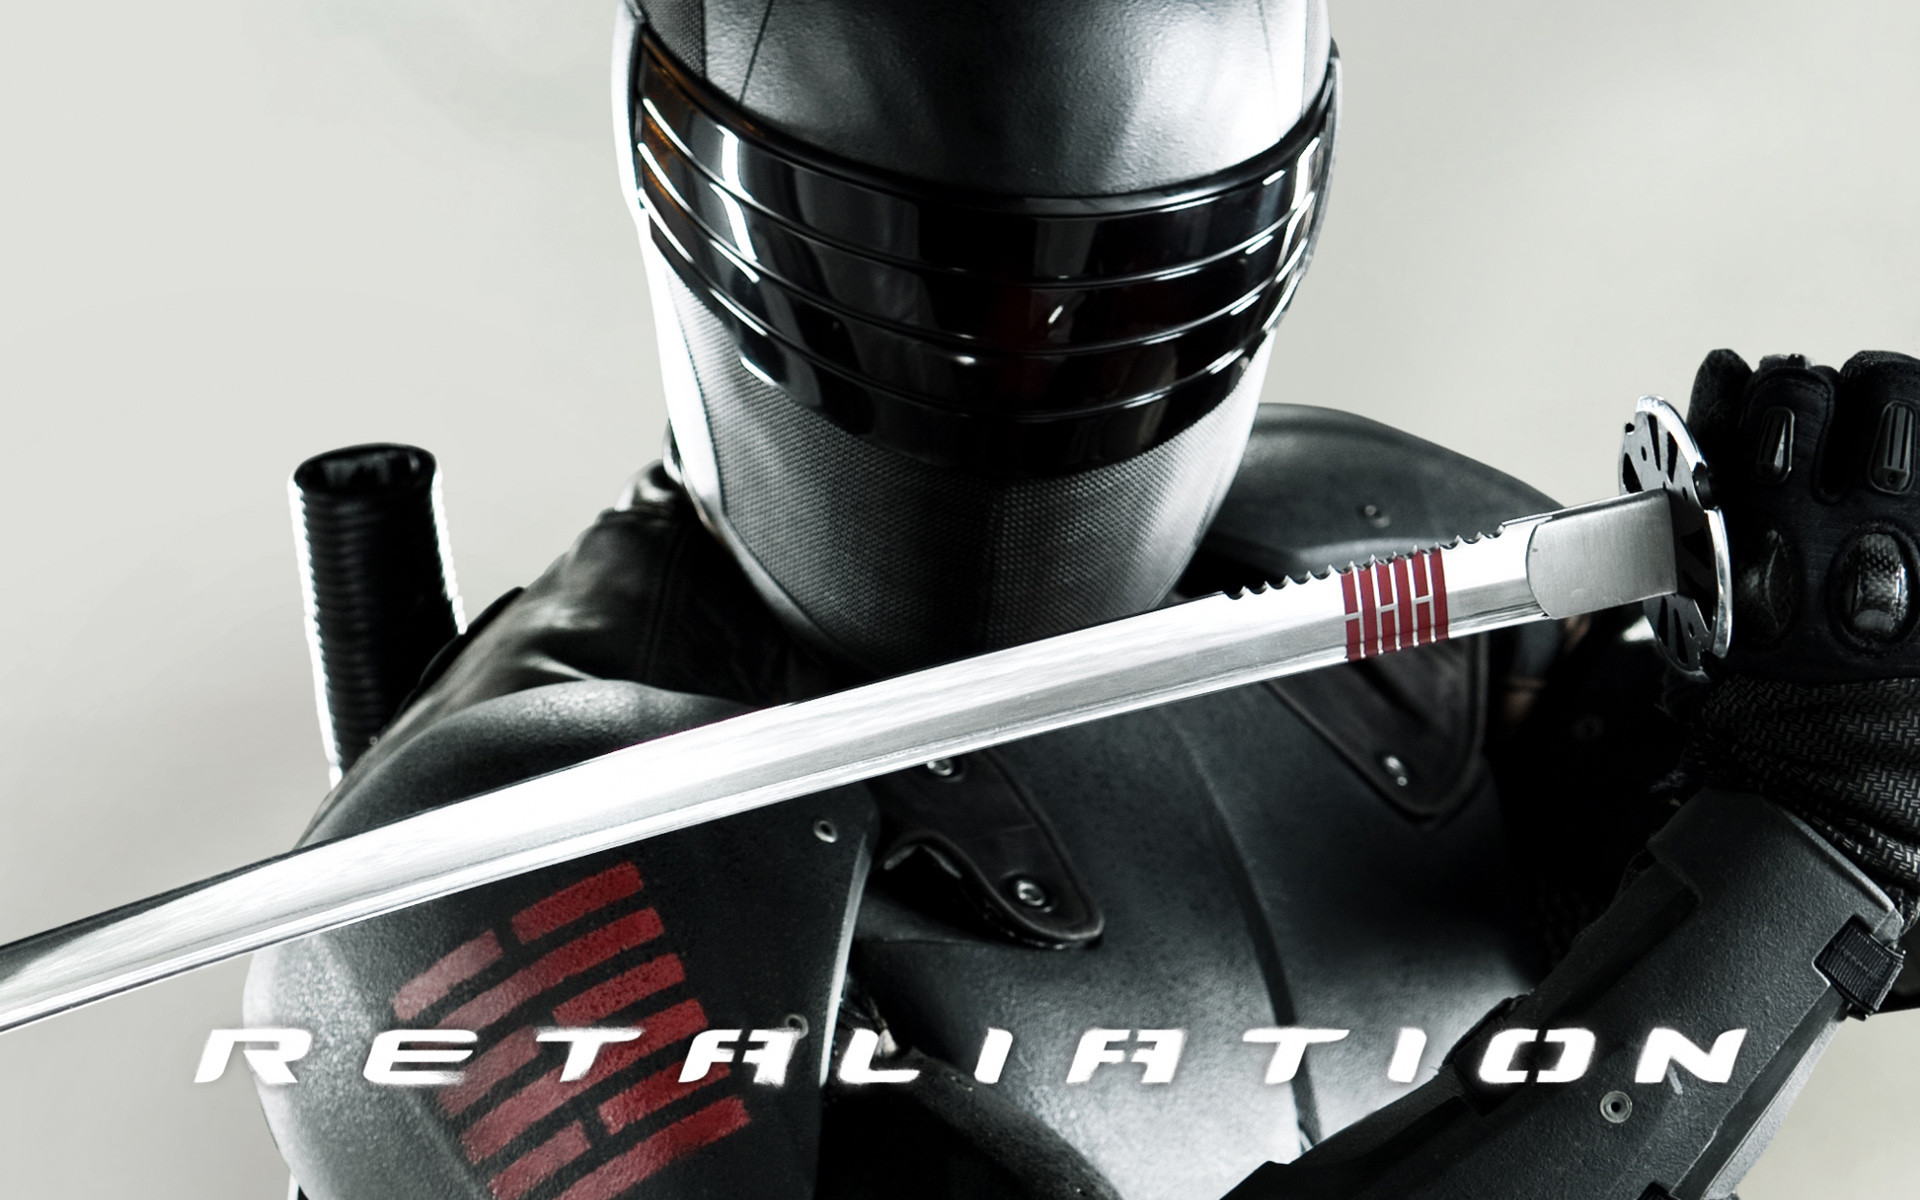 1920x1200 Snake Eyes in GI Joe 2 Retaliation